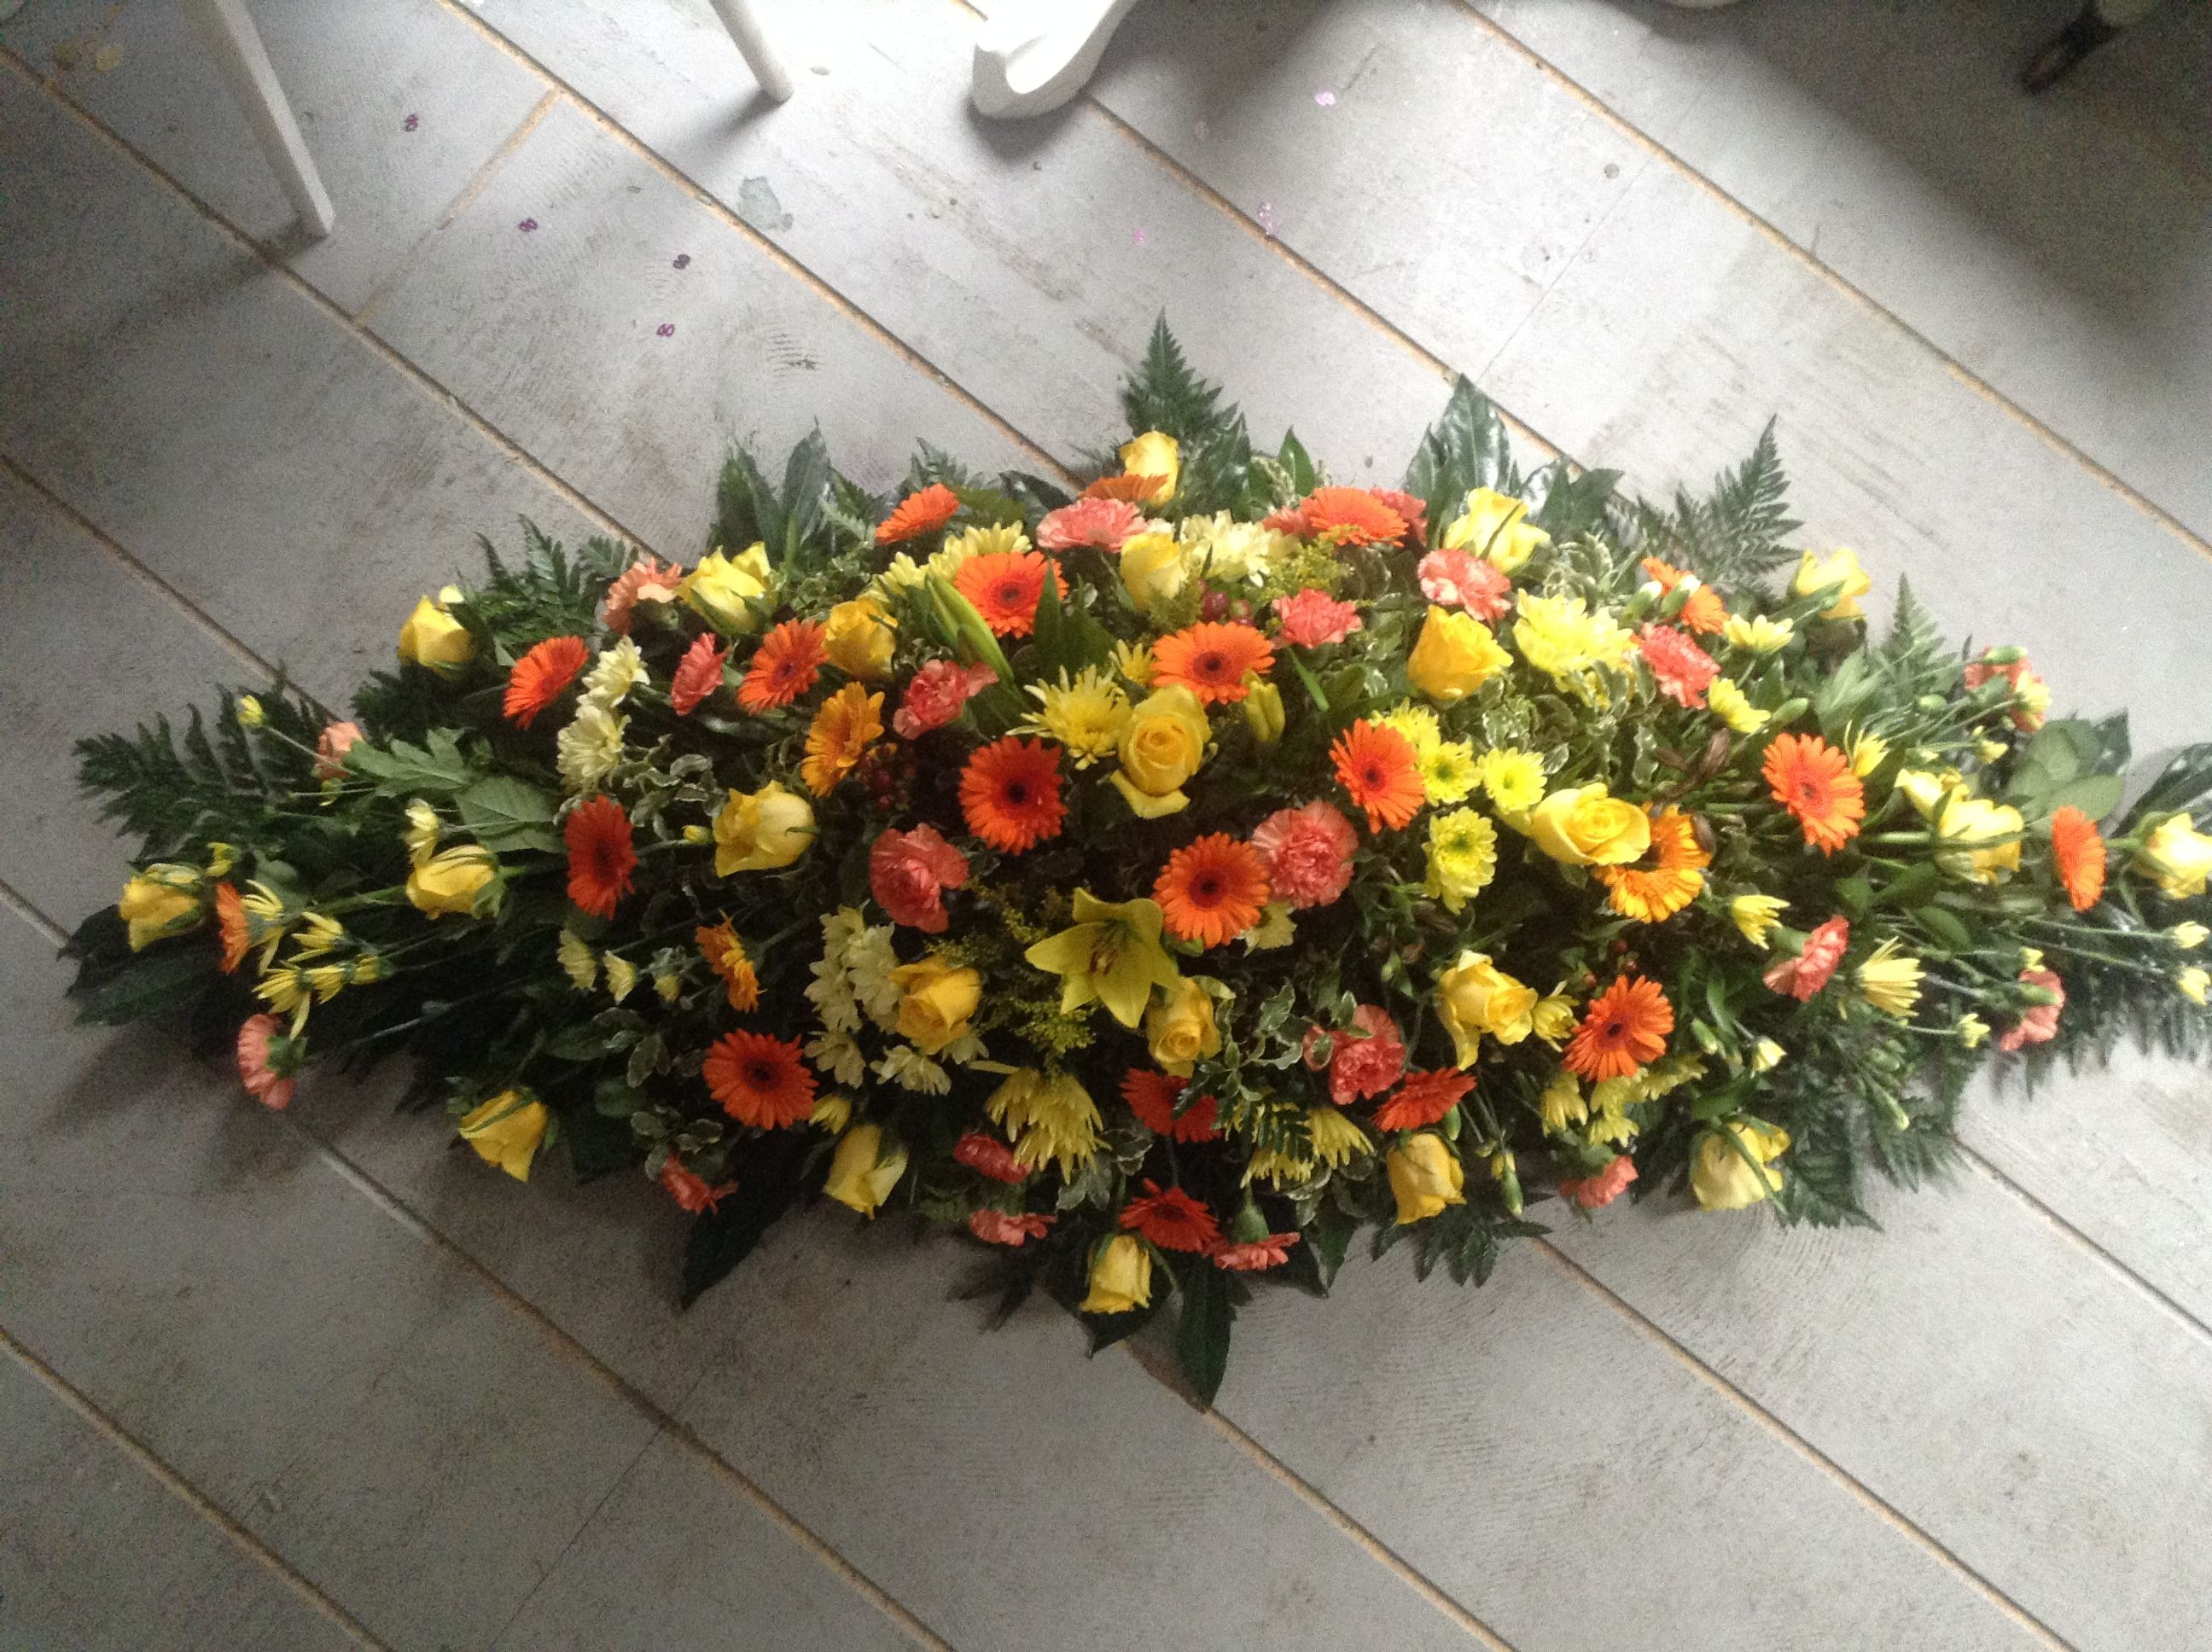 Orange and yellow funeral spray orange and yellow casket spray orange and yellow funeral spray orange and yellow casket spray funeral flowers izmirmasajfo Image collections